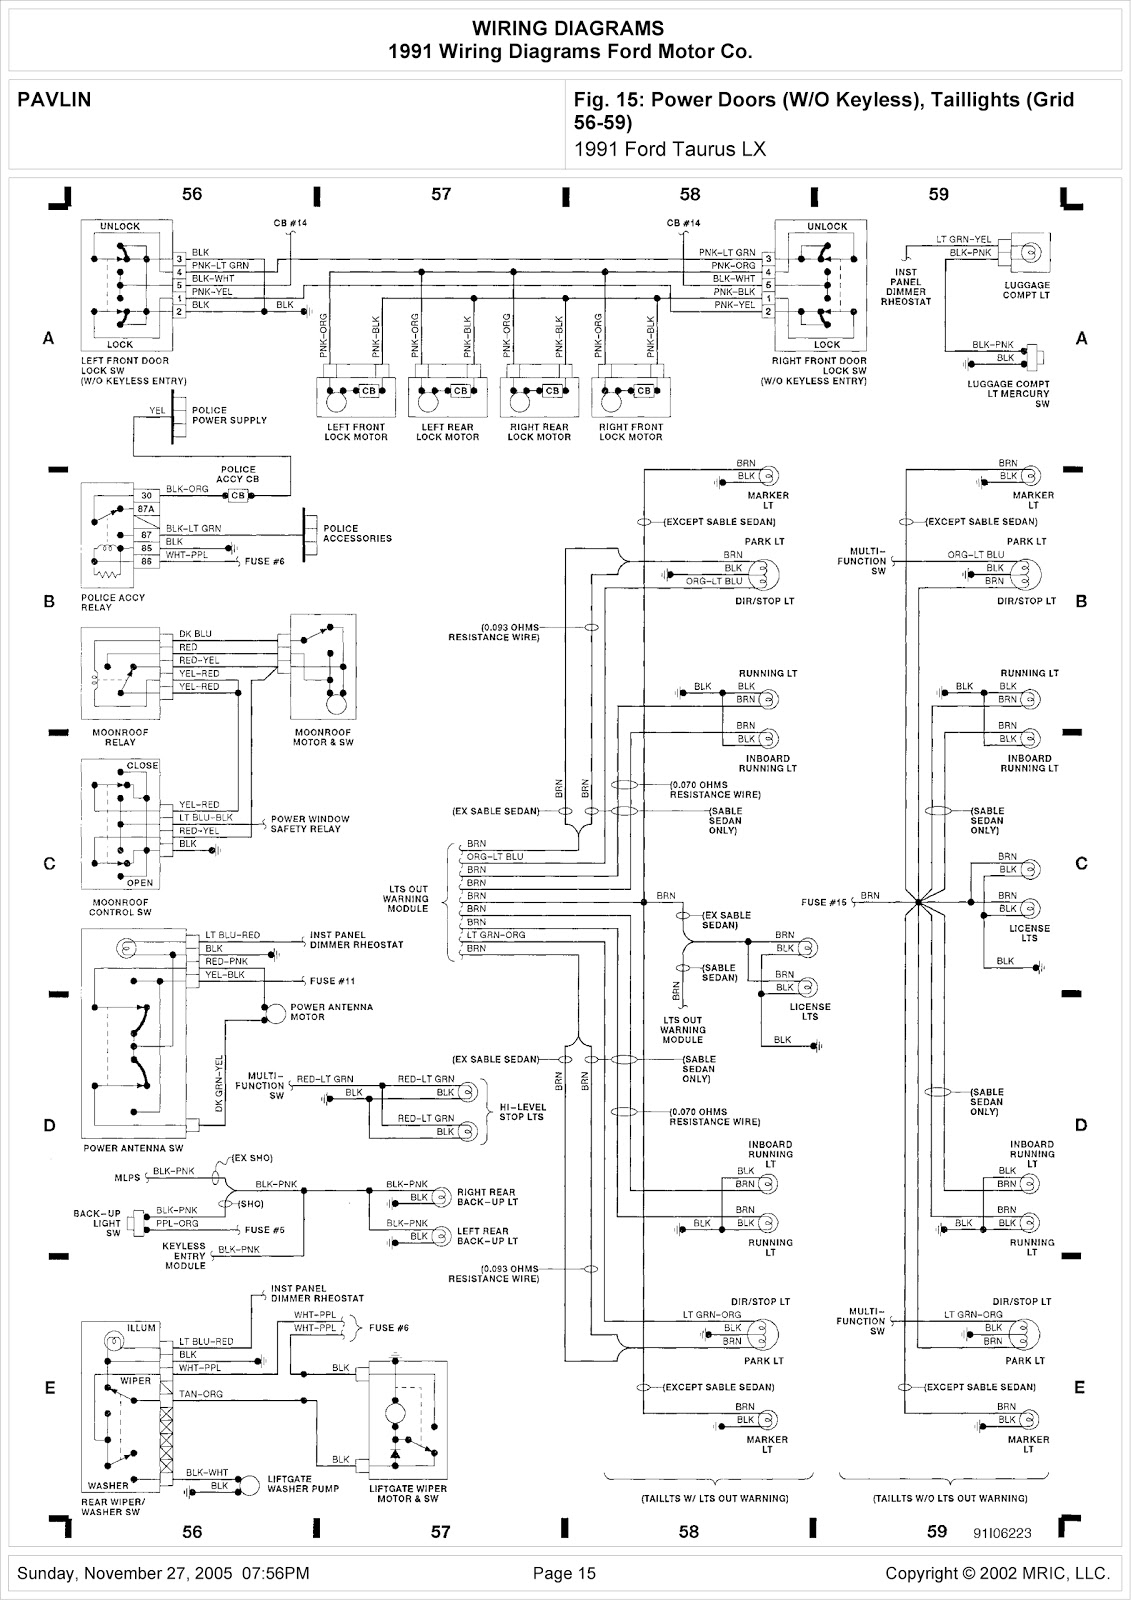 1991 Ford Taurus Lx System Wiring Diagram Power Doors Taillights